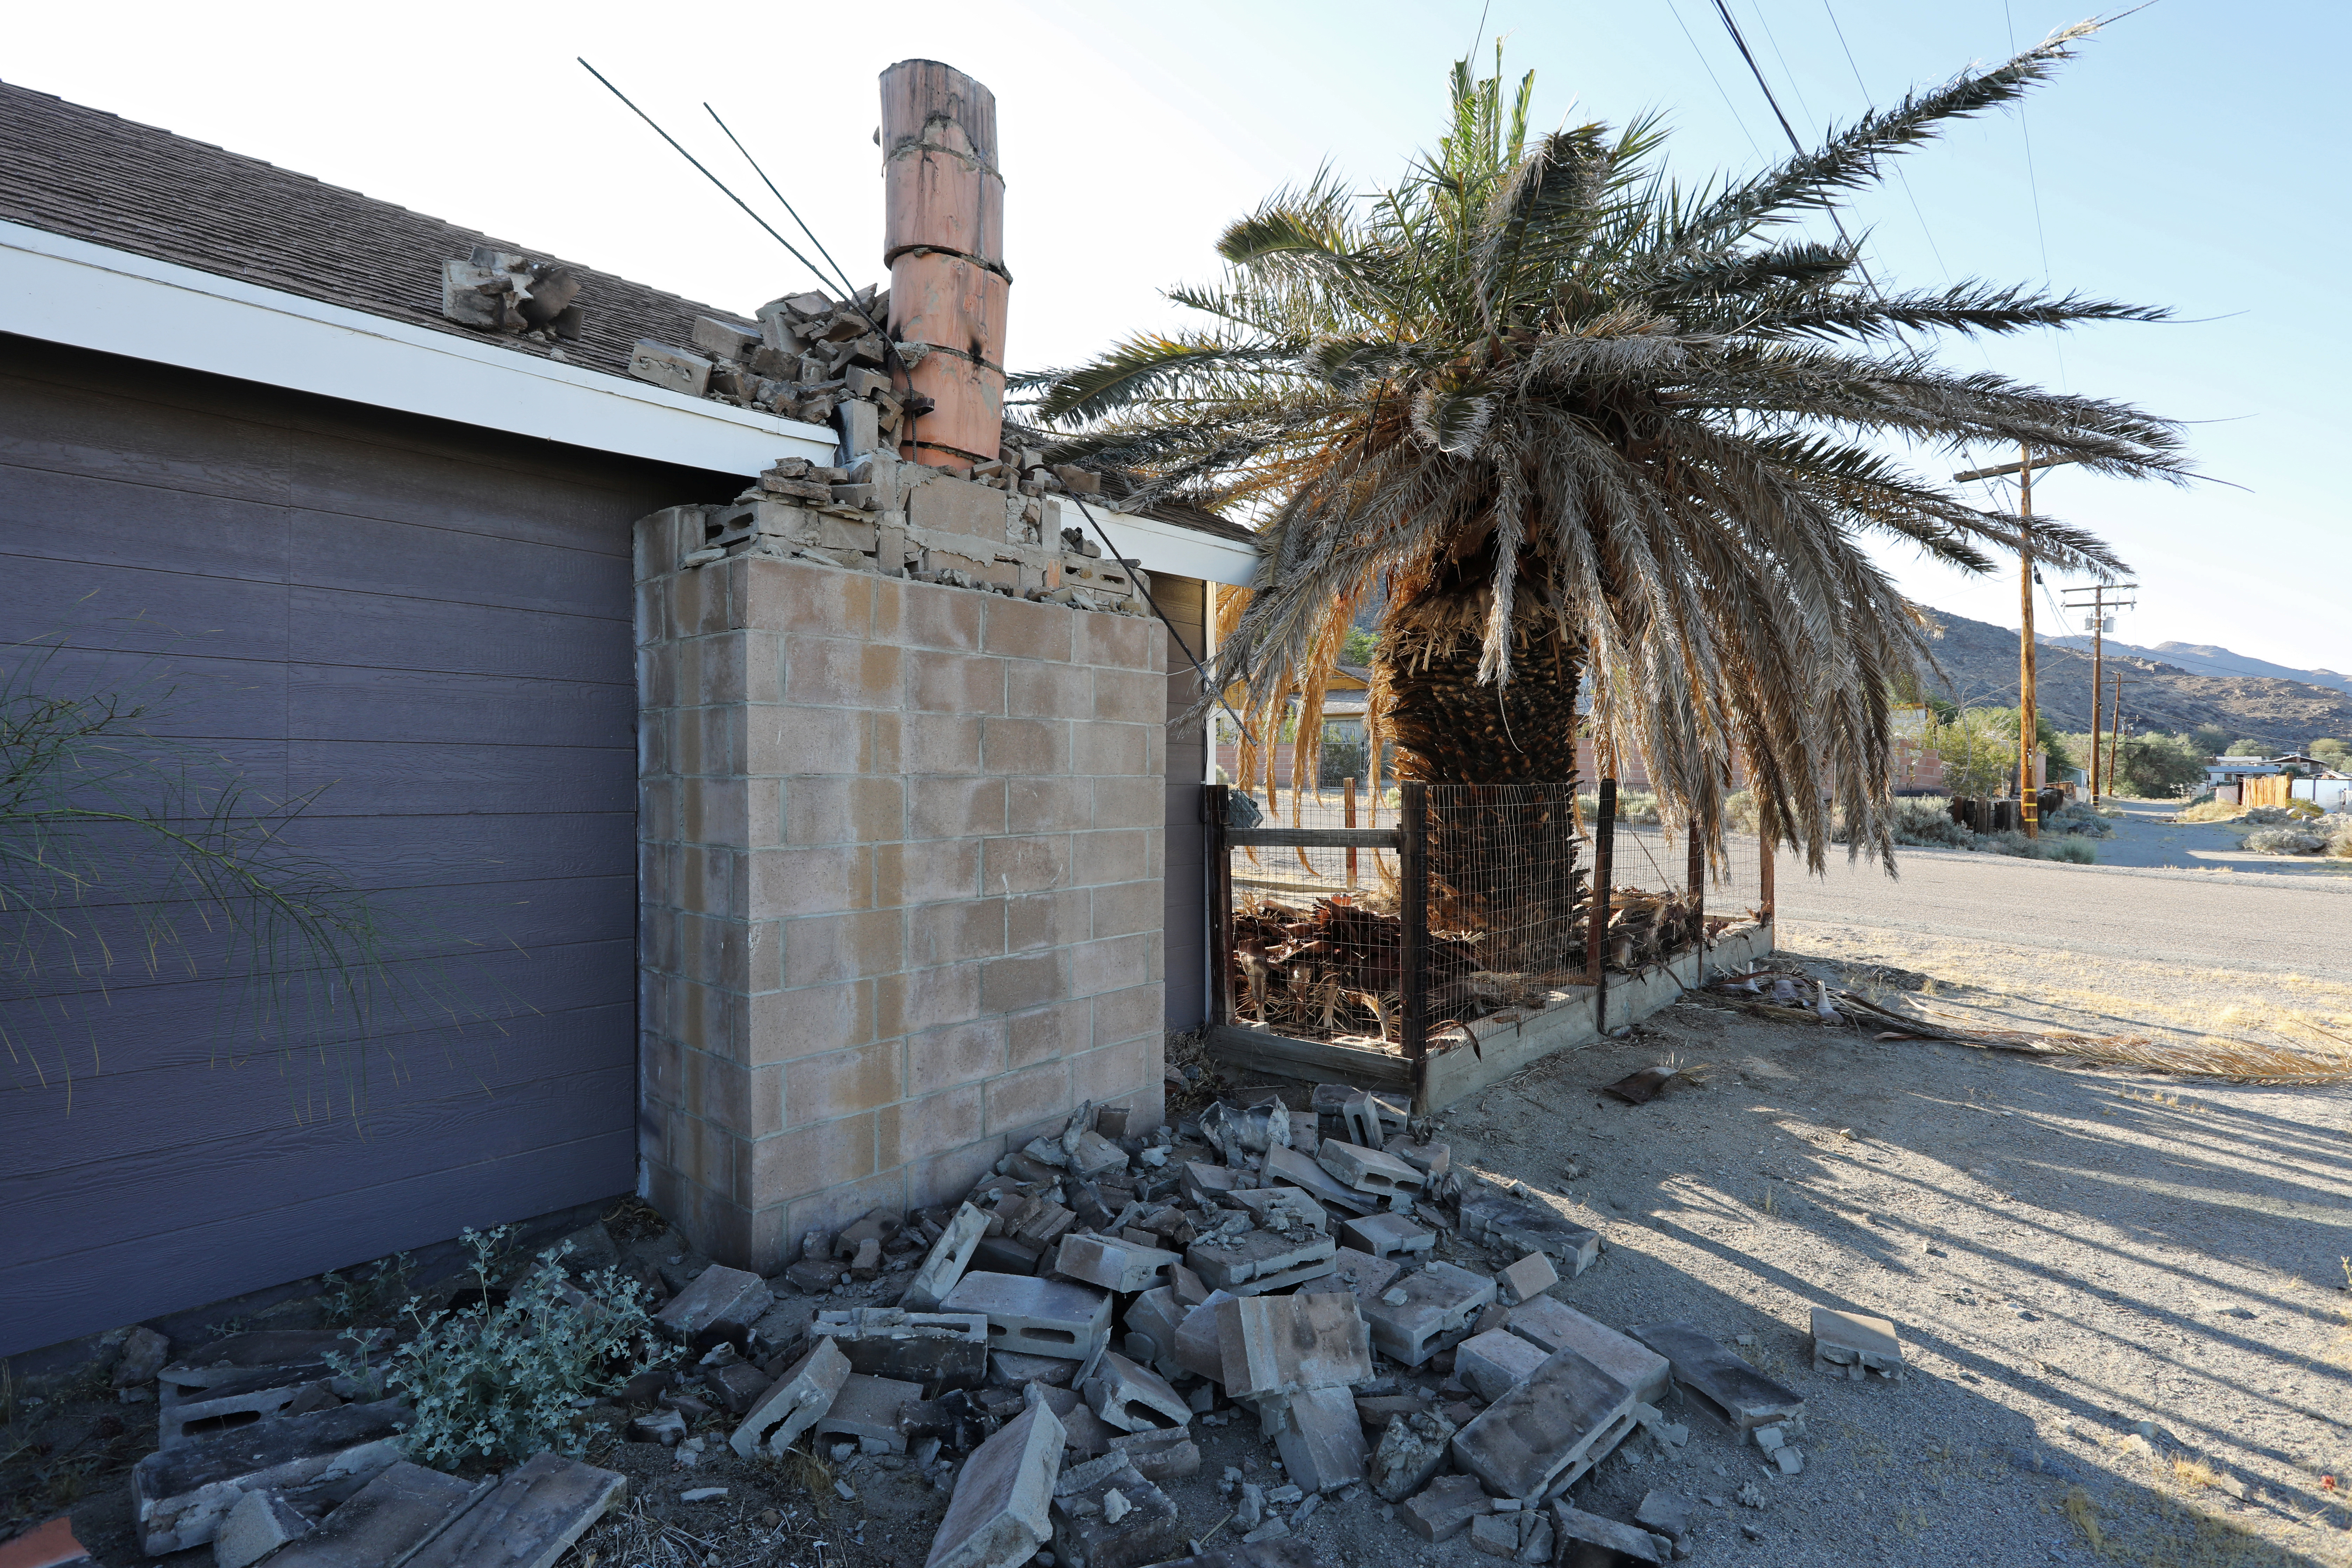 A house is seen damaged from a powerful earthquake that struck Southern California, near the epicenter, northeast the city of Ridgecrest, California, U.S., July 4, 2019. REUTERS/David McNew